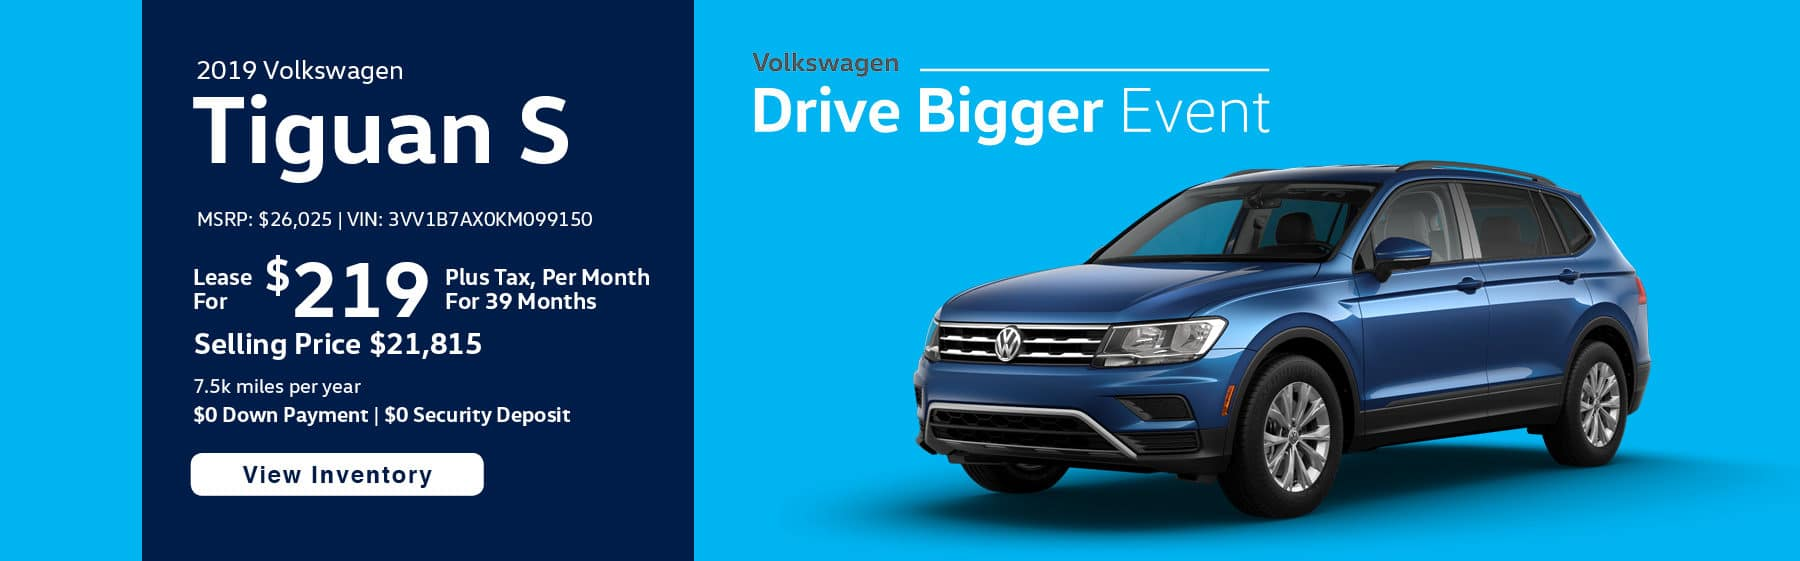 Lease the 2019 Tiguan S for $212 per month, plus tax for 39 months.